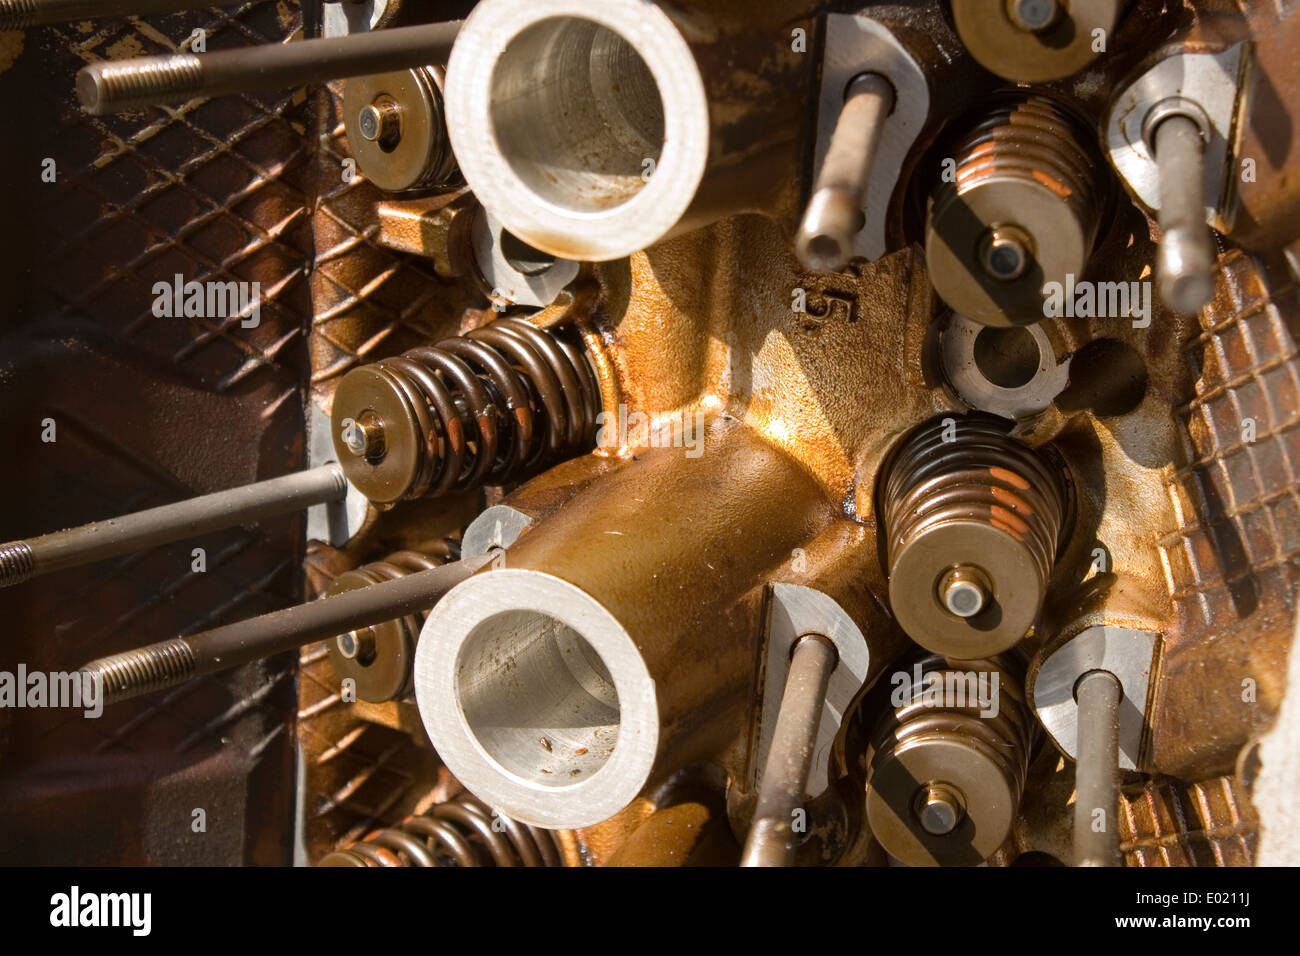 A close up of a head off a internal combustion engine including valve springs Stock Photo